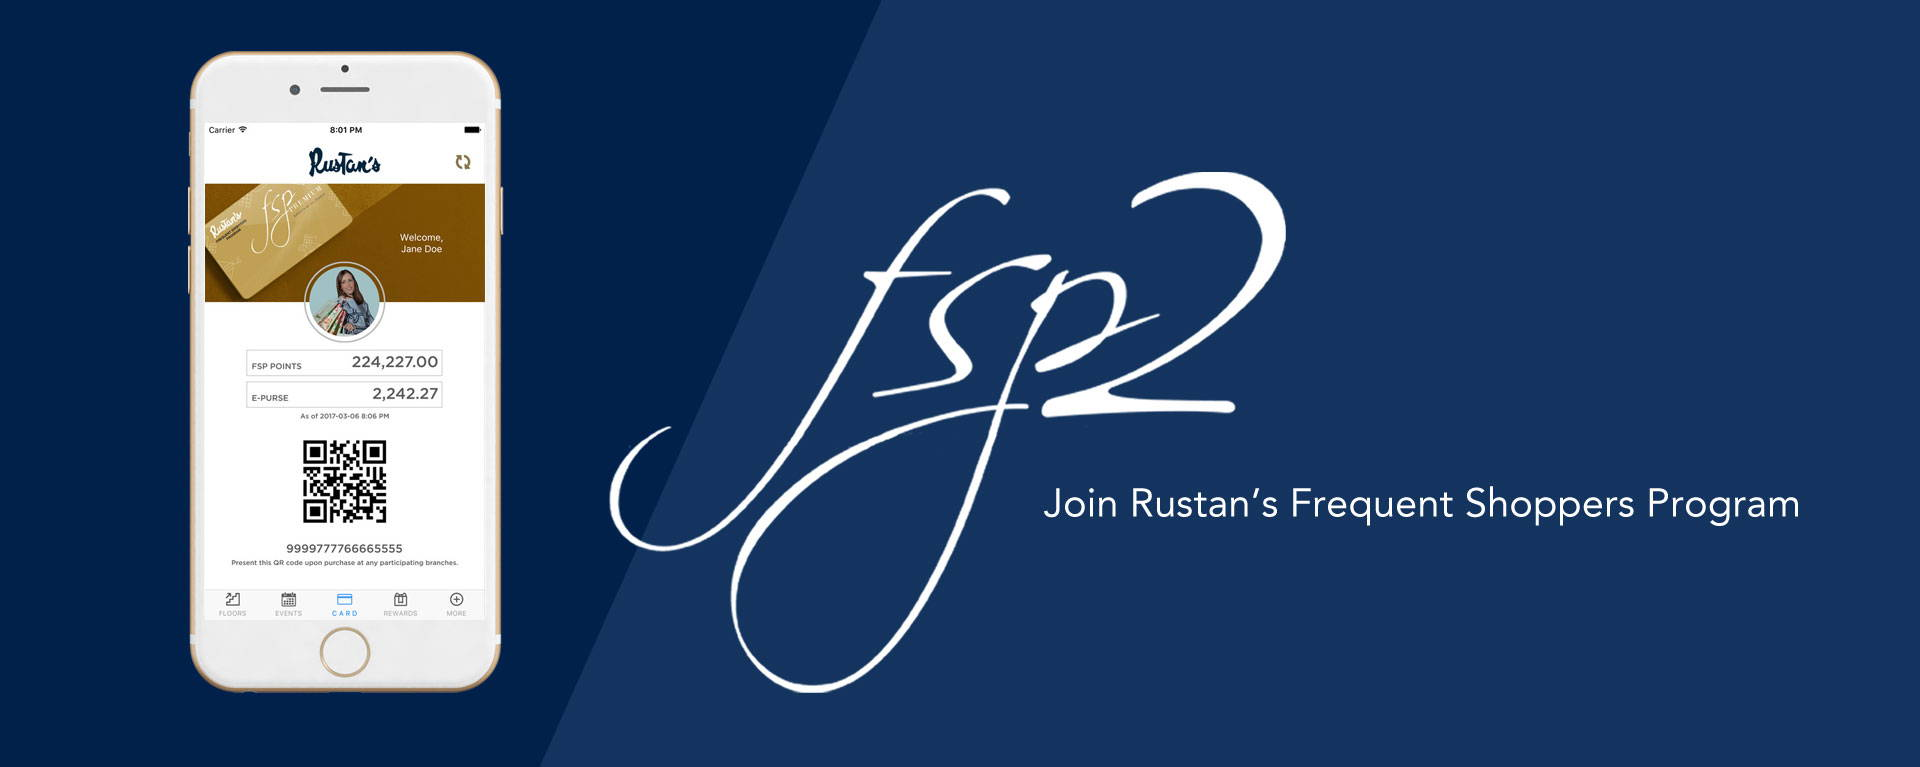 Join Rustan's Frequent Shoppers Program